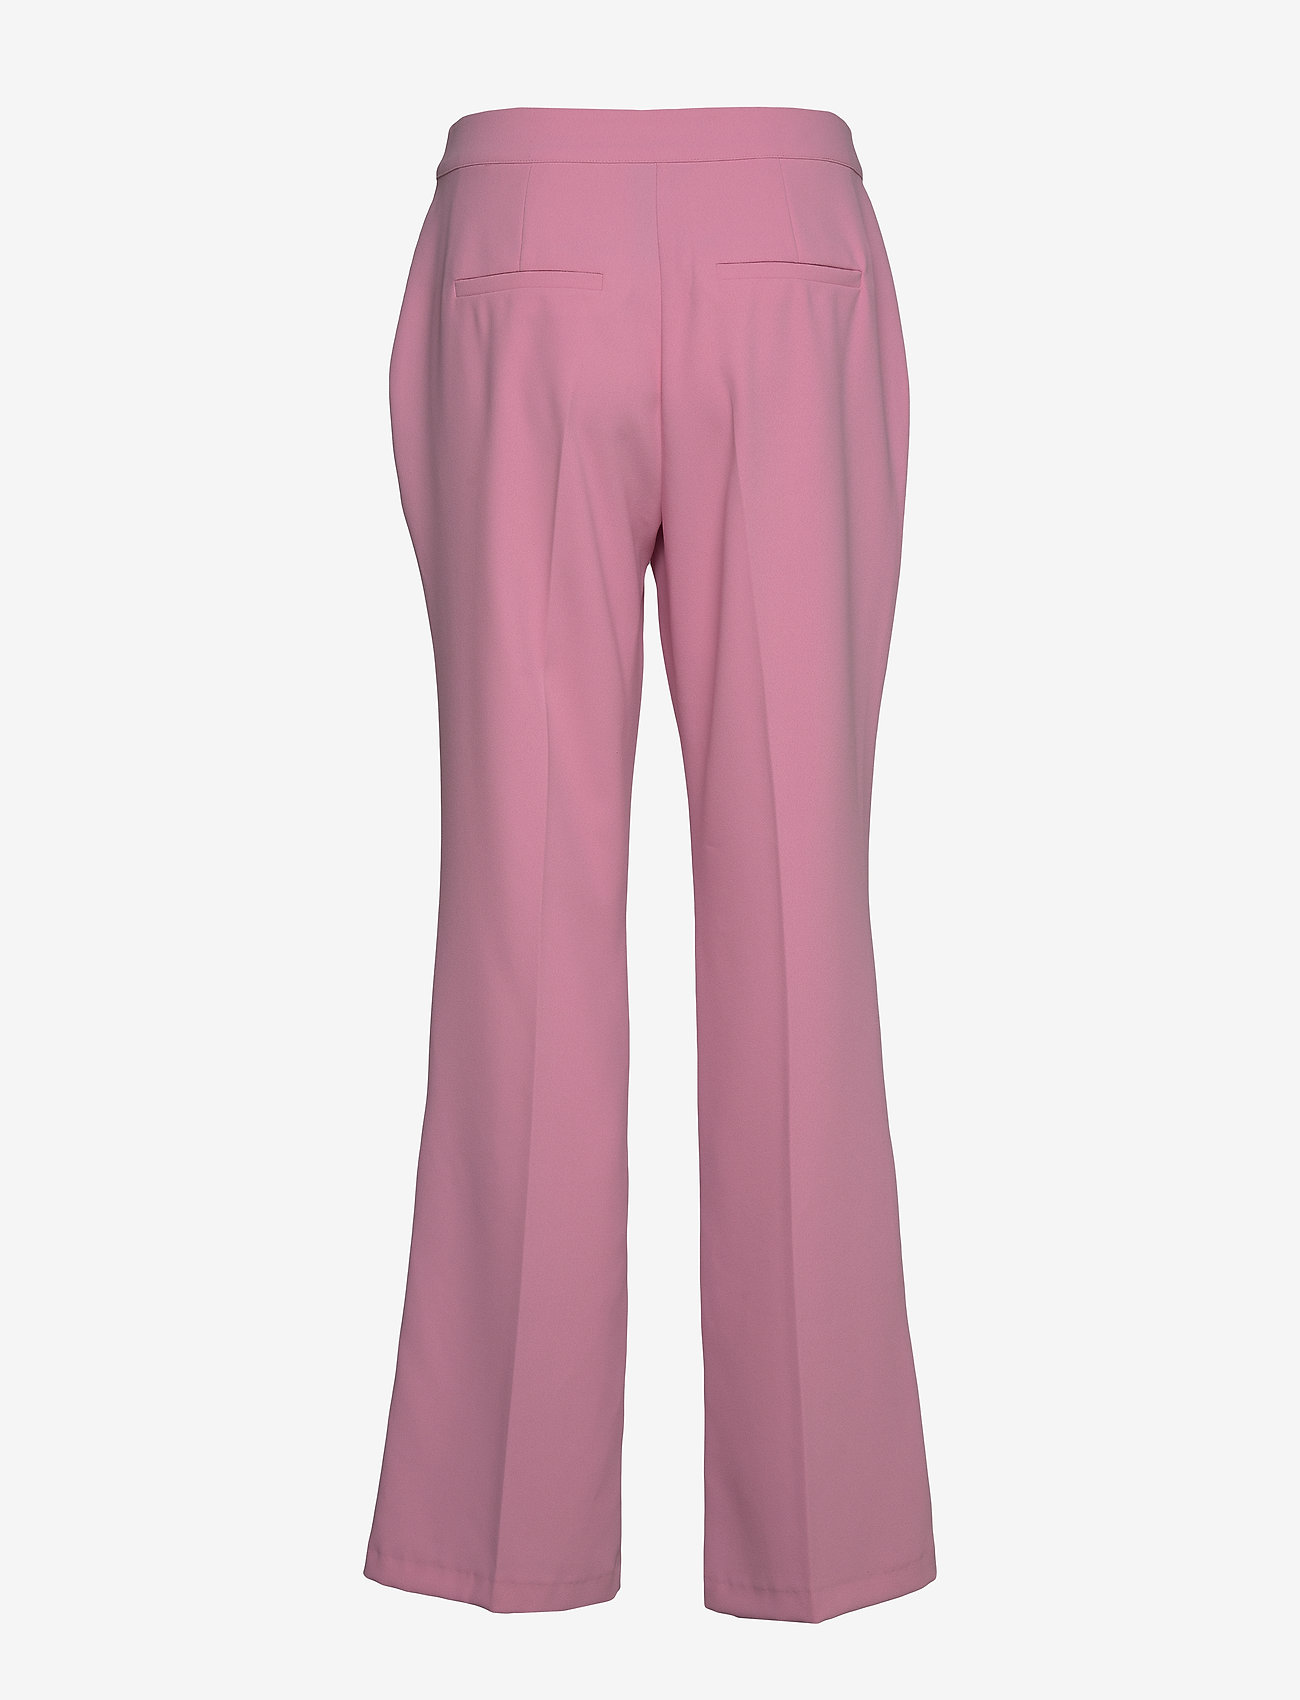 Leisure Trousers Lon (Pink Sugar) - Taifun 9fxvtL